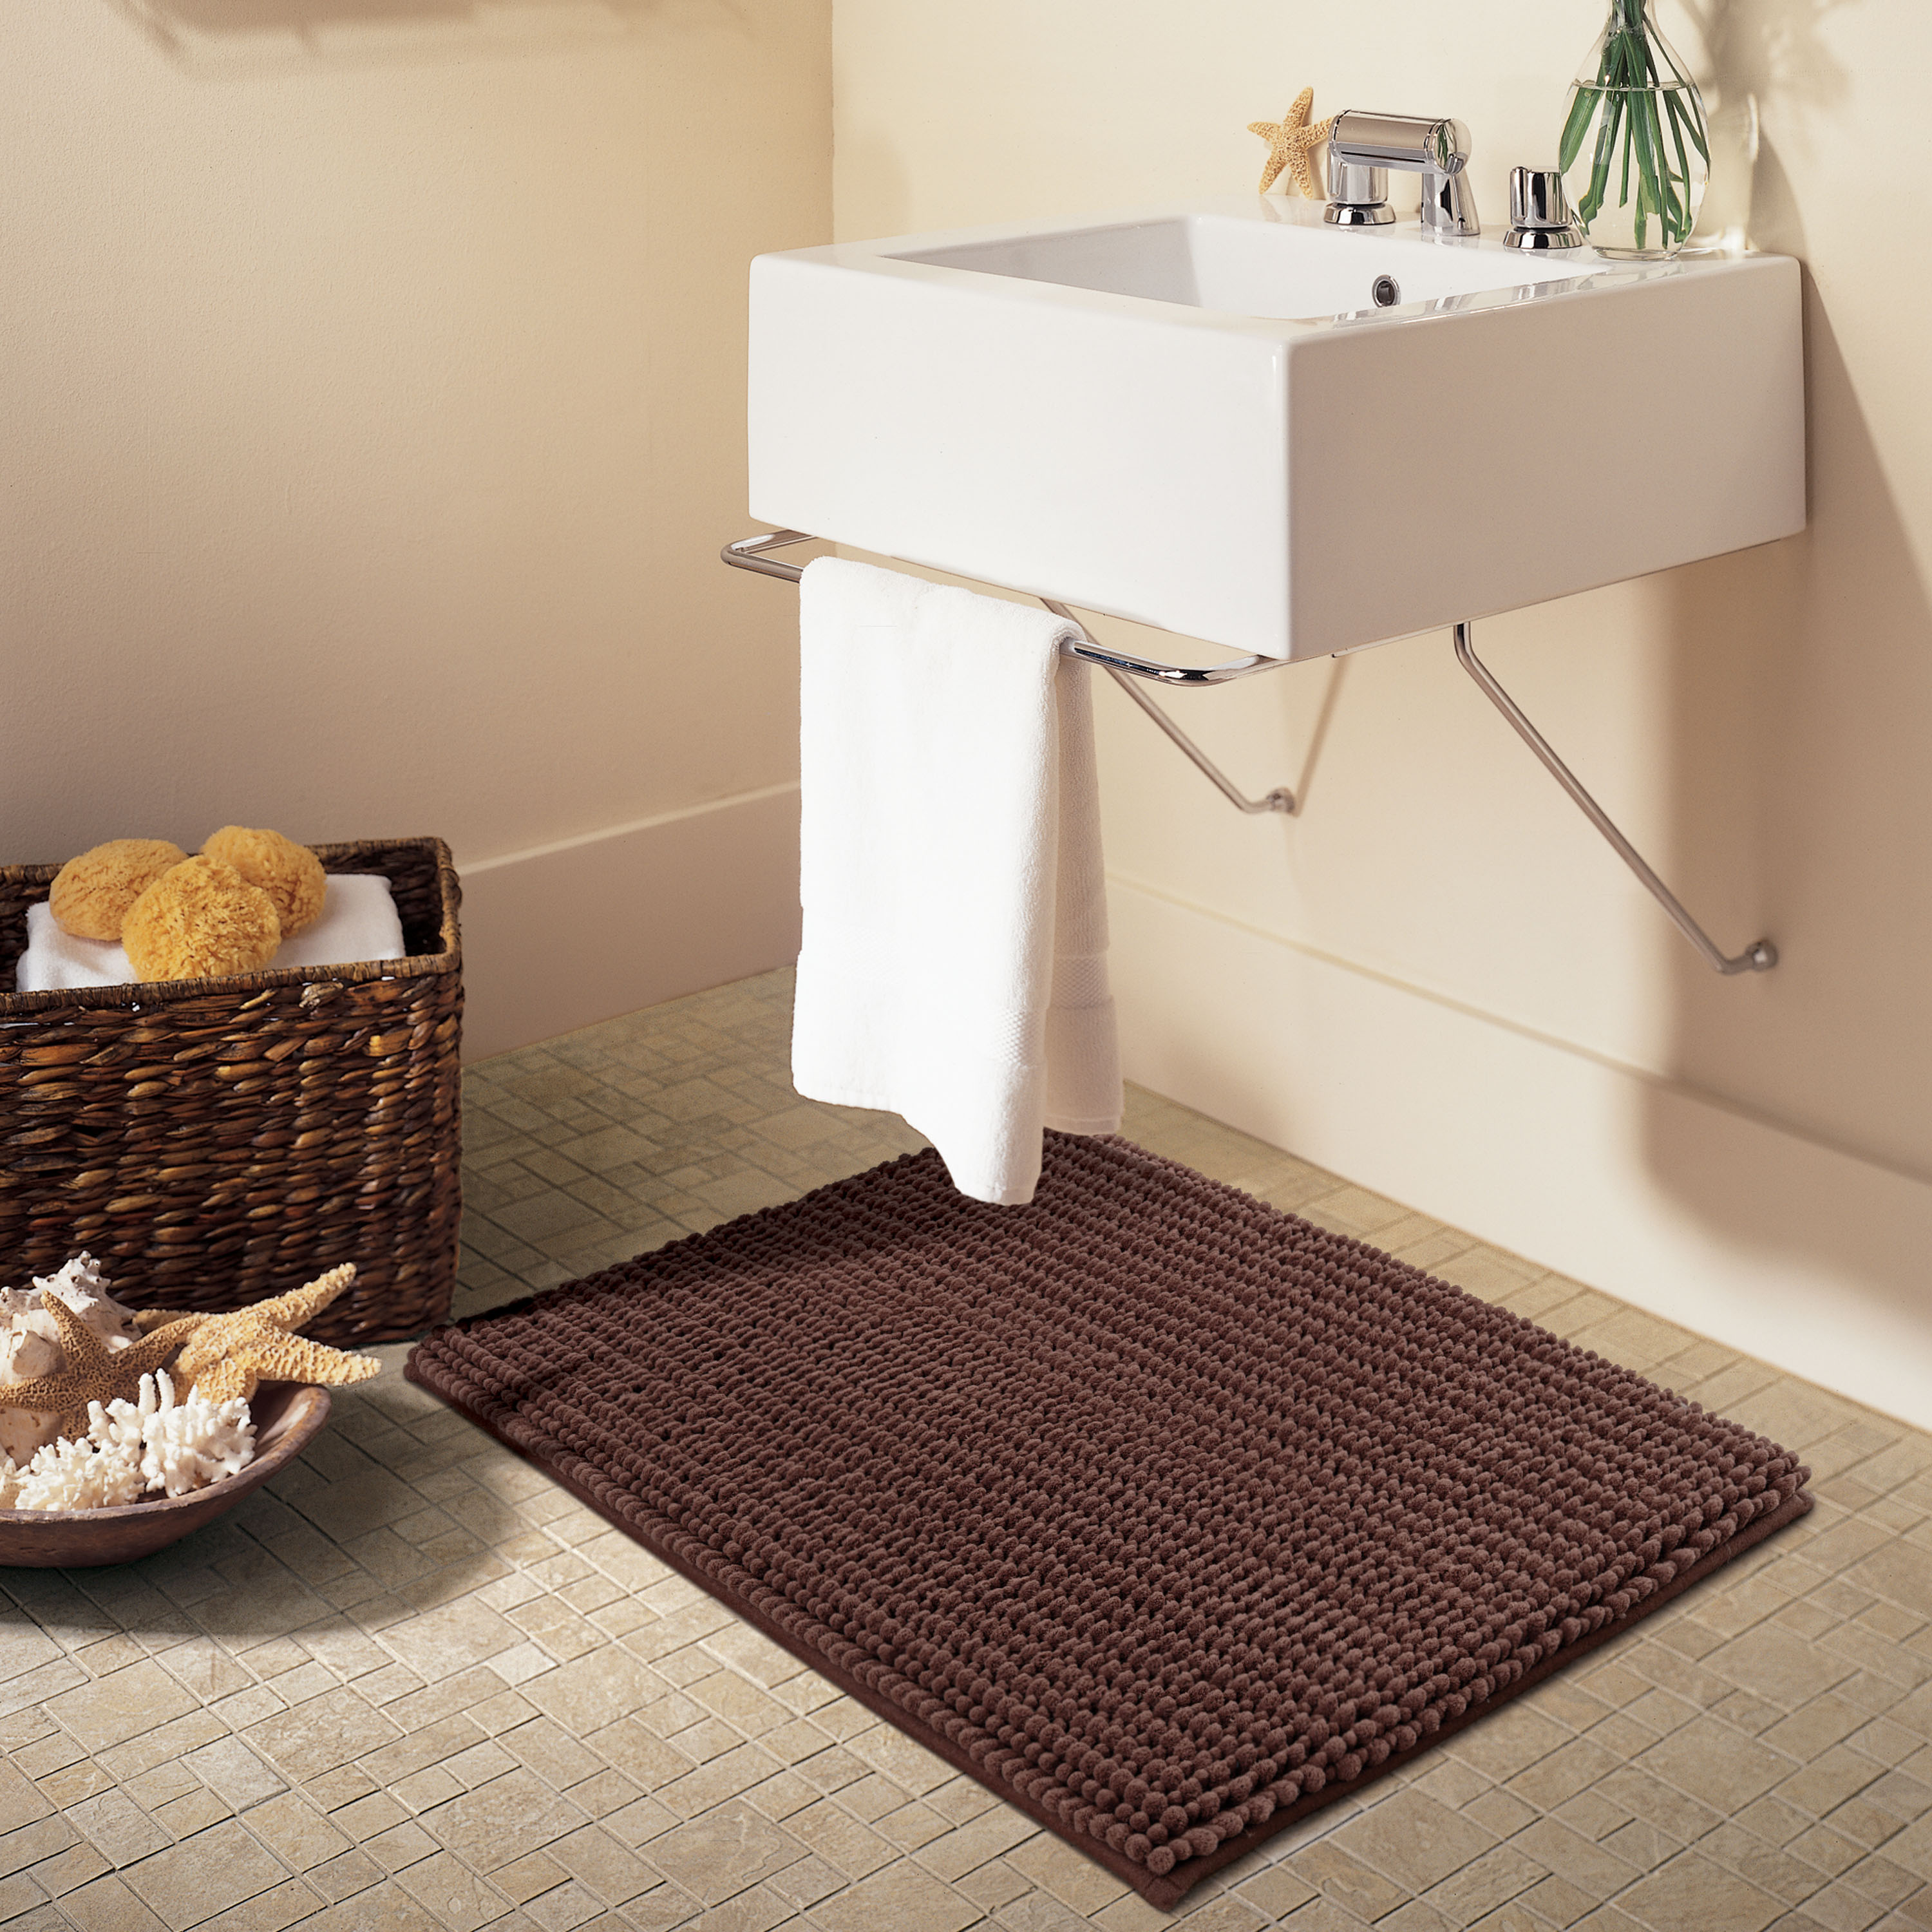 "Better Homes & Gardens Noodle Memory Foam Bath Rug, 17"" x 23.5"", Skid-resistant, Brown Basket"